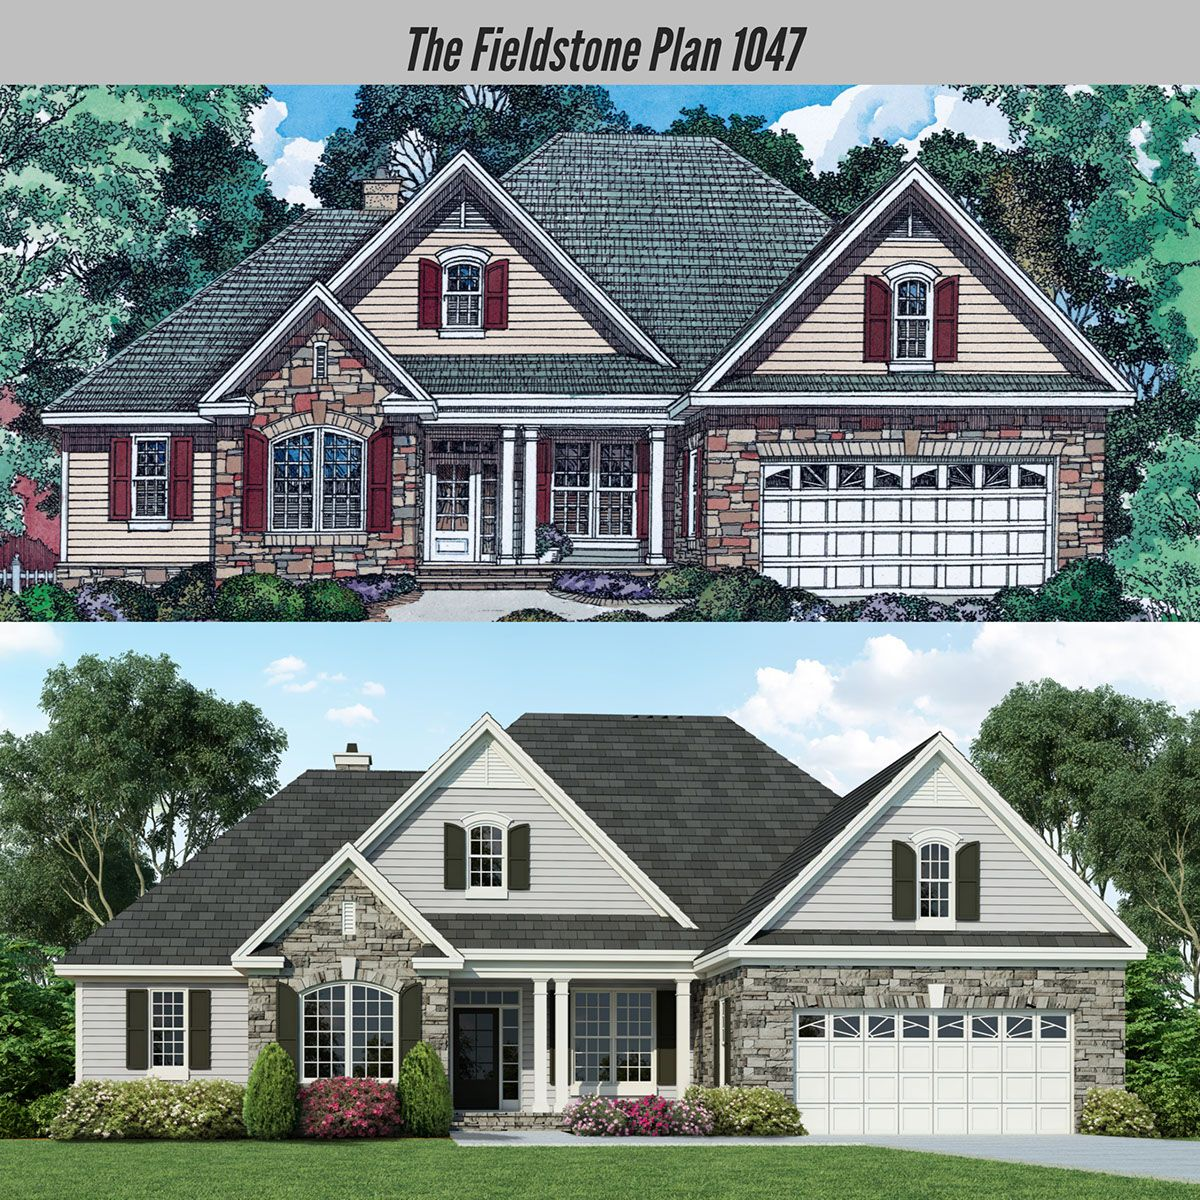 Home Addition Plans: A Fresh New Look For The Fieldstone Plan 1047